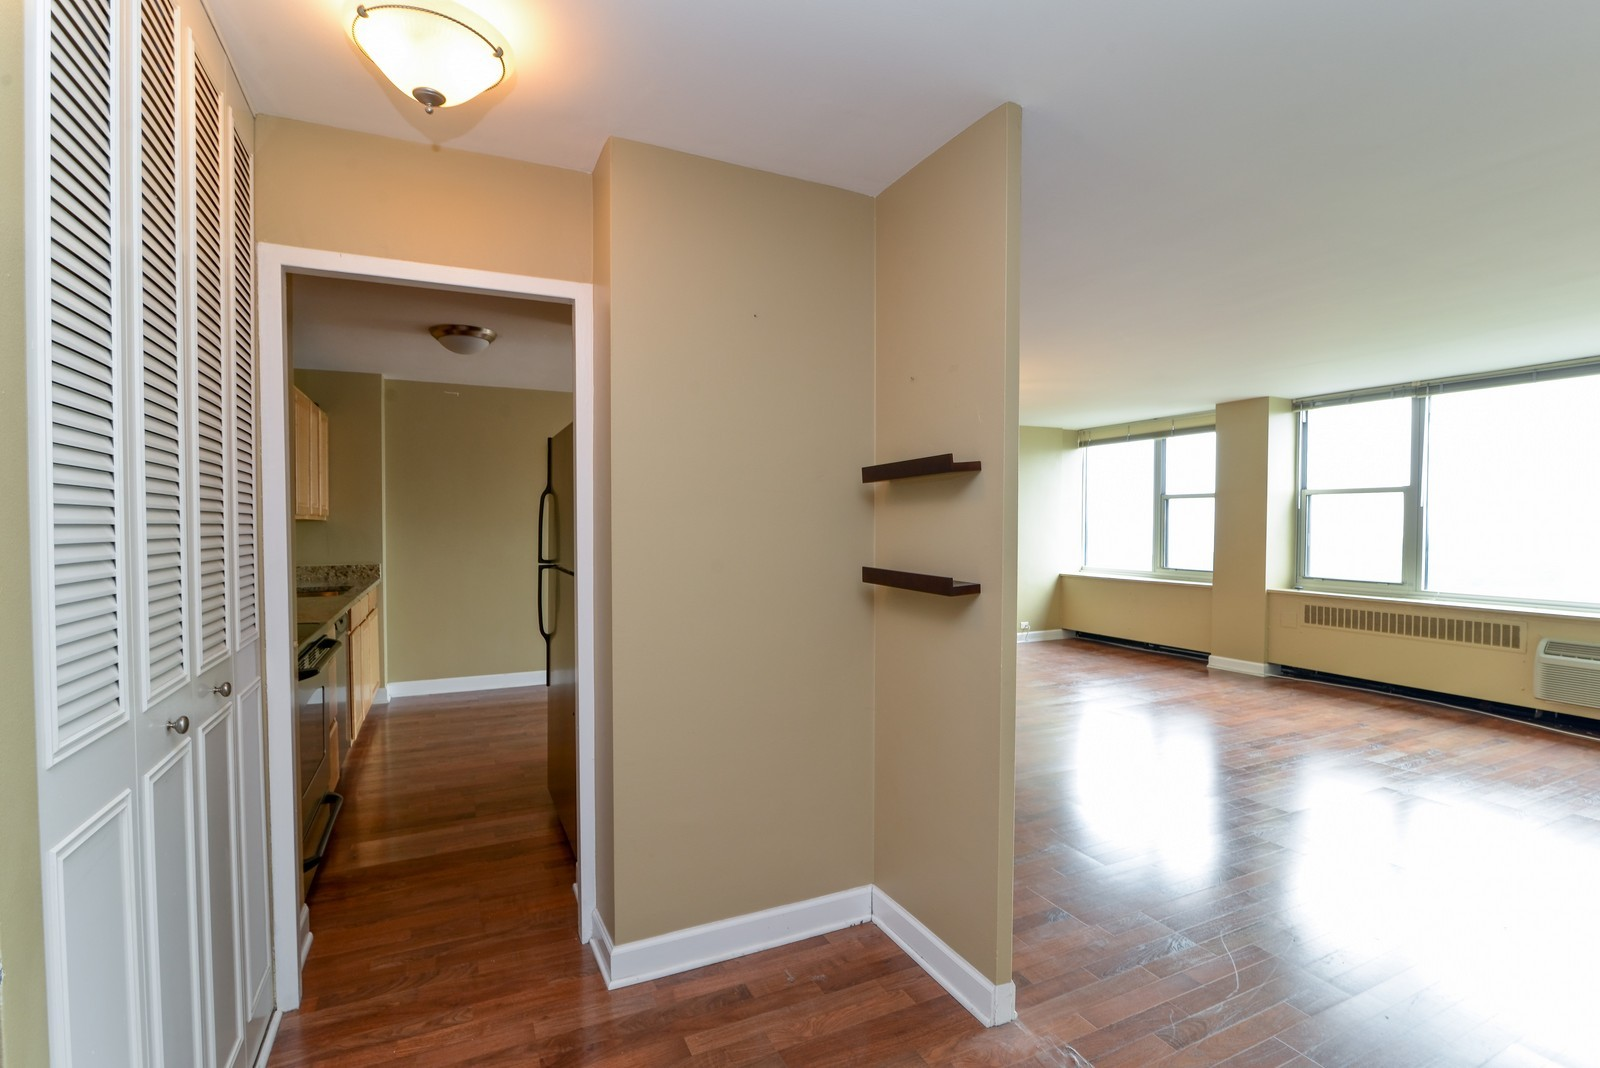 Real Estate Photography - 4250 N Marine Dr, Unit 1806S, Chicago, IL, 60613 - Hallway